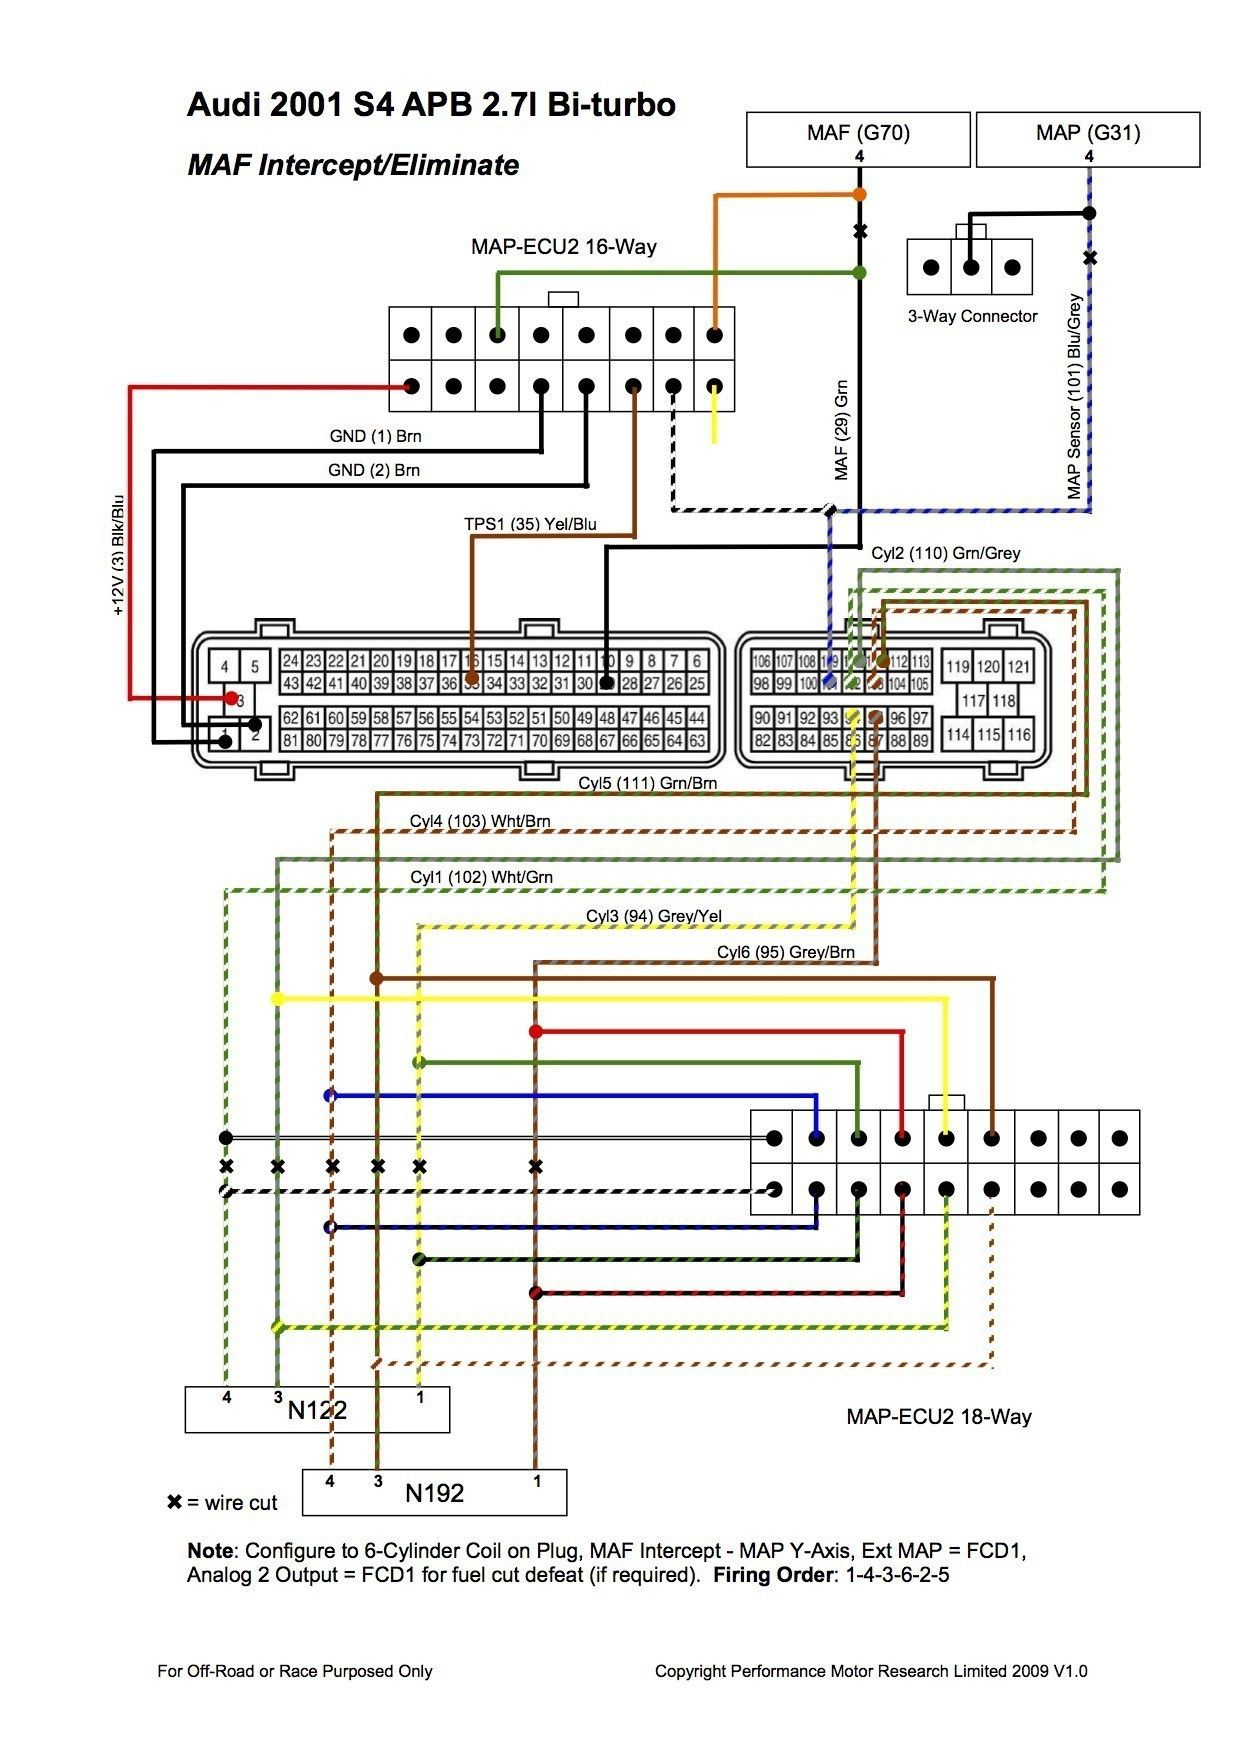 2014 Toyota Sequoia Wiring Diagram - Speedometer Wire Diagram 94 Gmc -  1990-300zx.ra-rewel2.jeanjaures37.fr | 2014 Toyota Sequoia Wiring Diagram |  | Wiring Diagram Resource